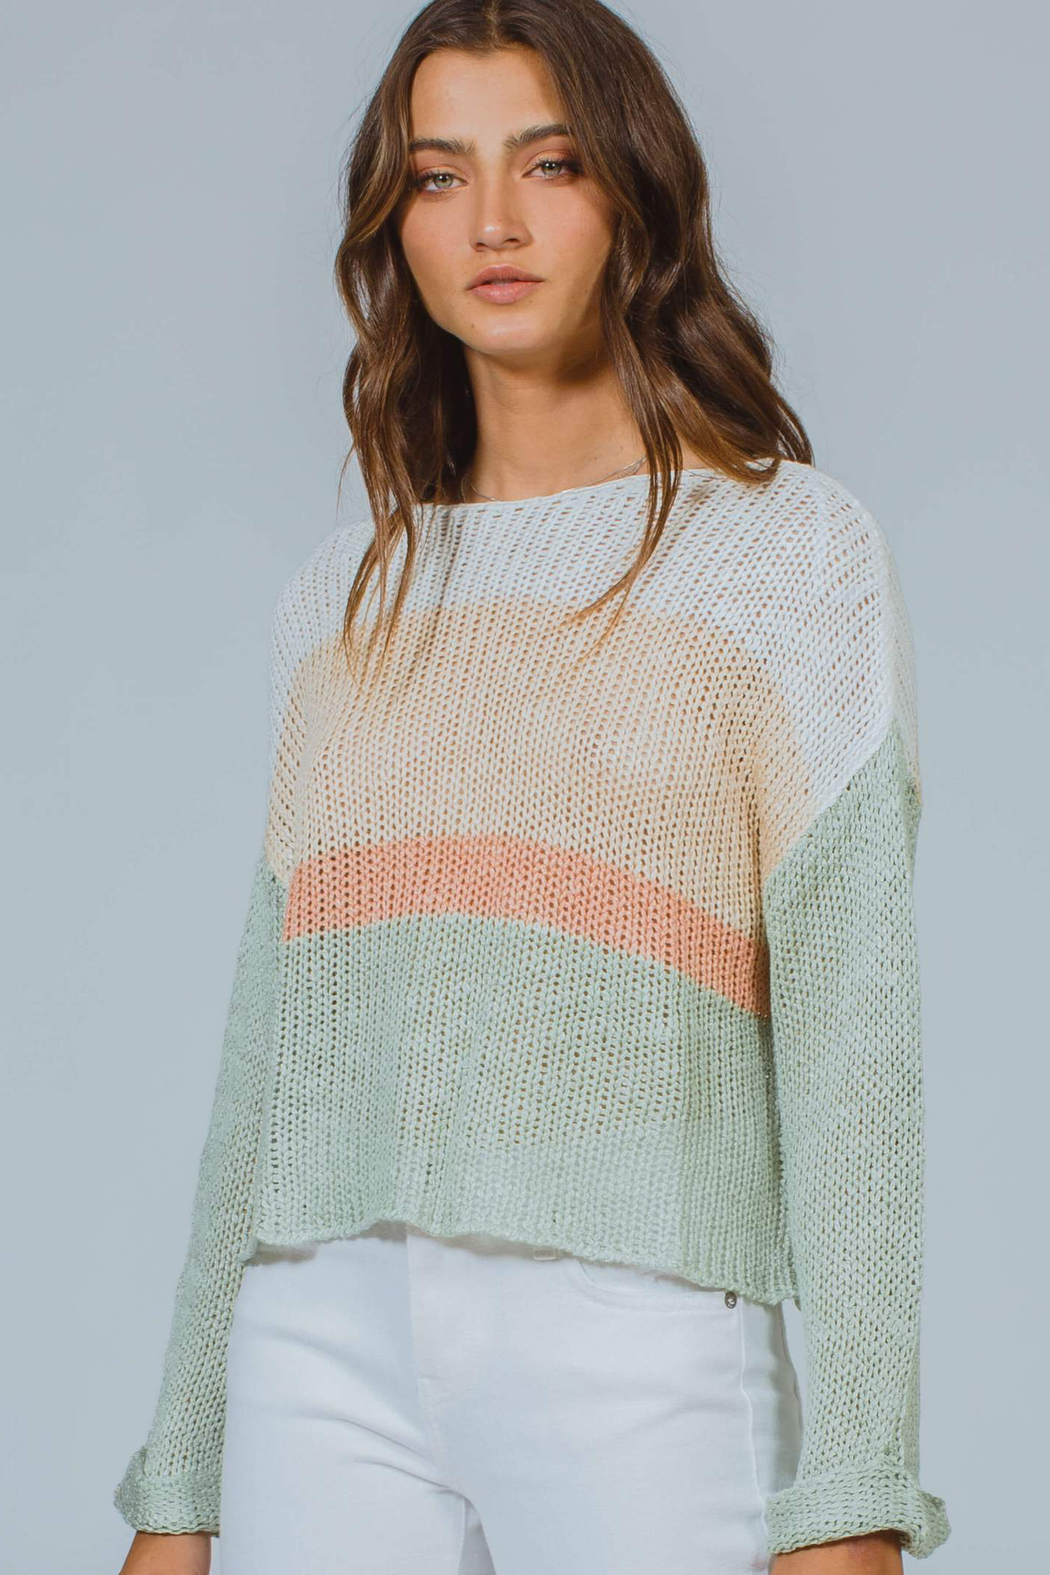 MinkPink Simone Color Block Knit Sweater - Main Image